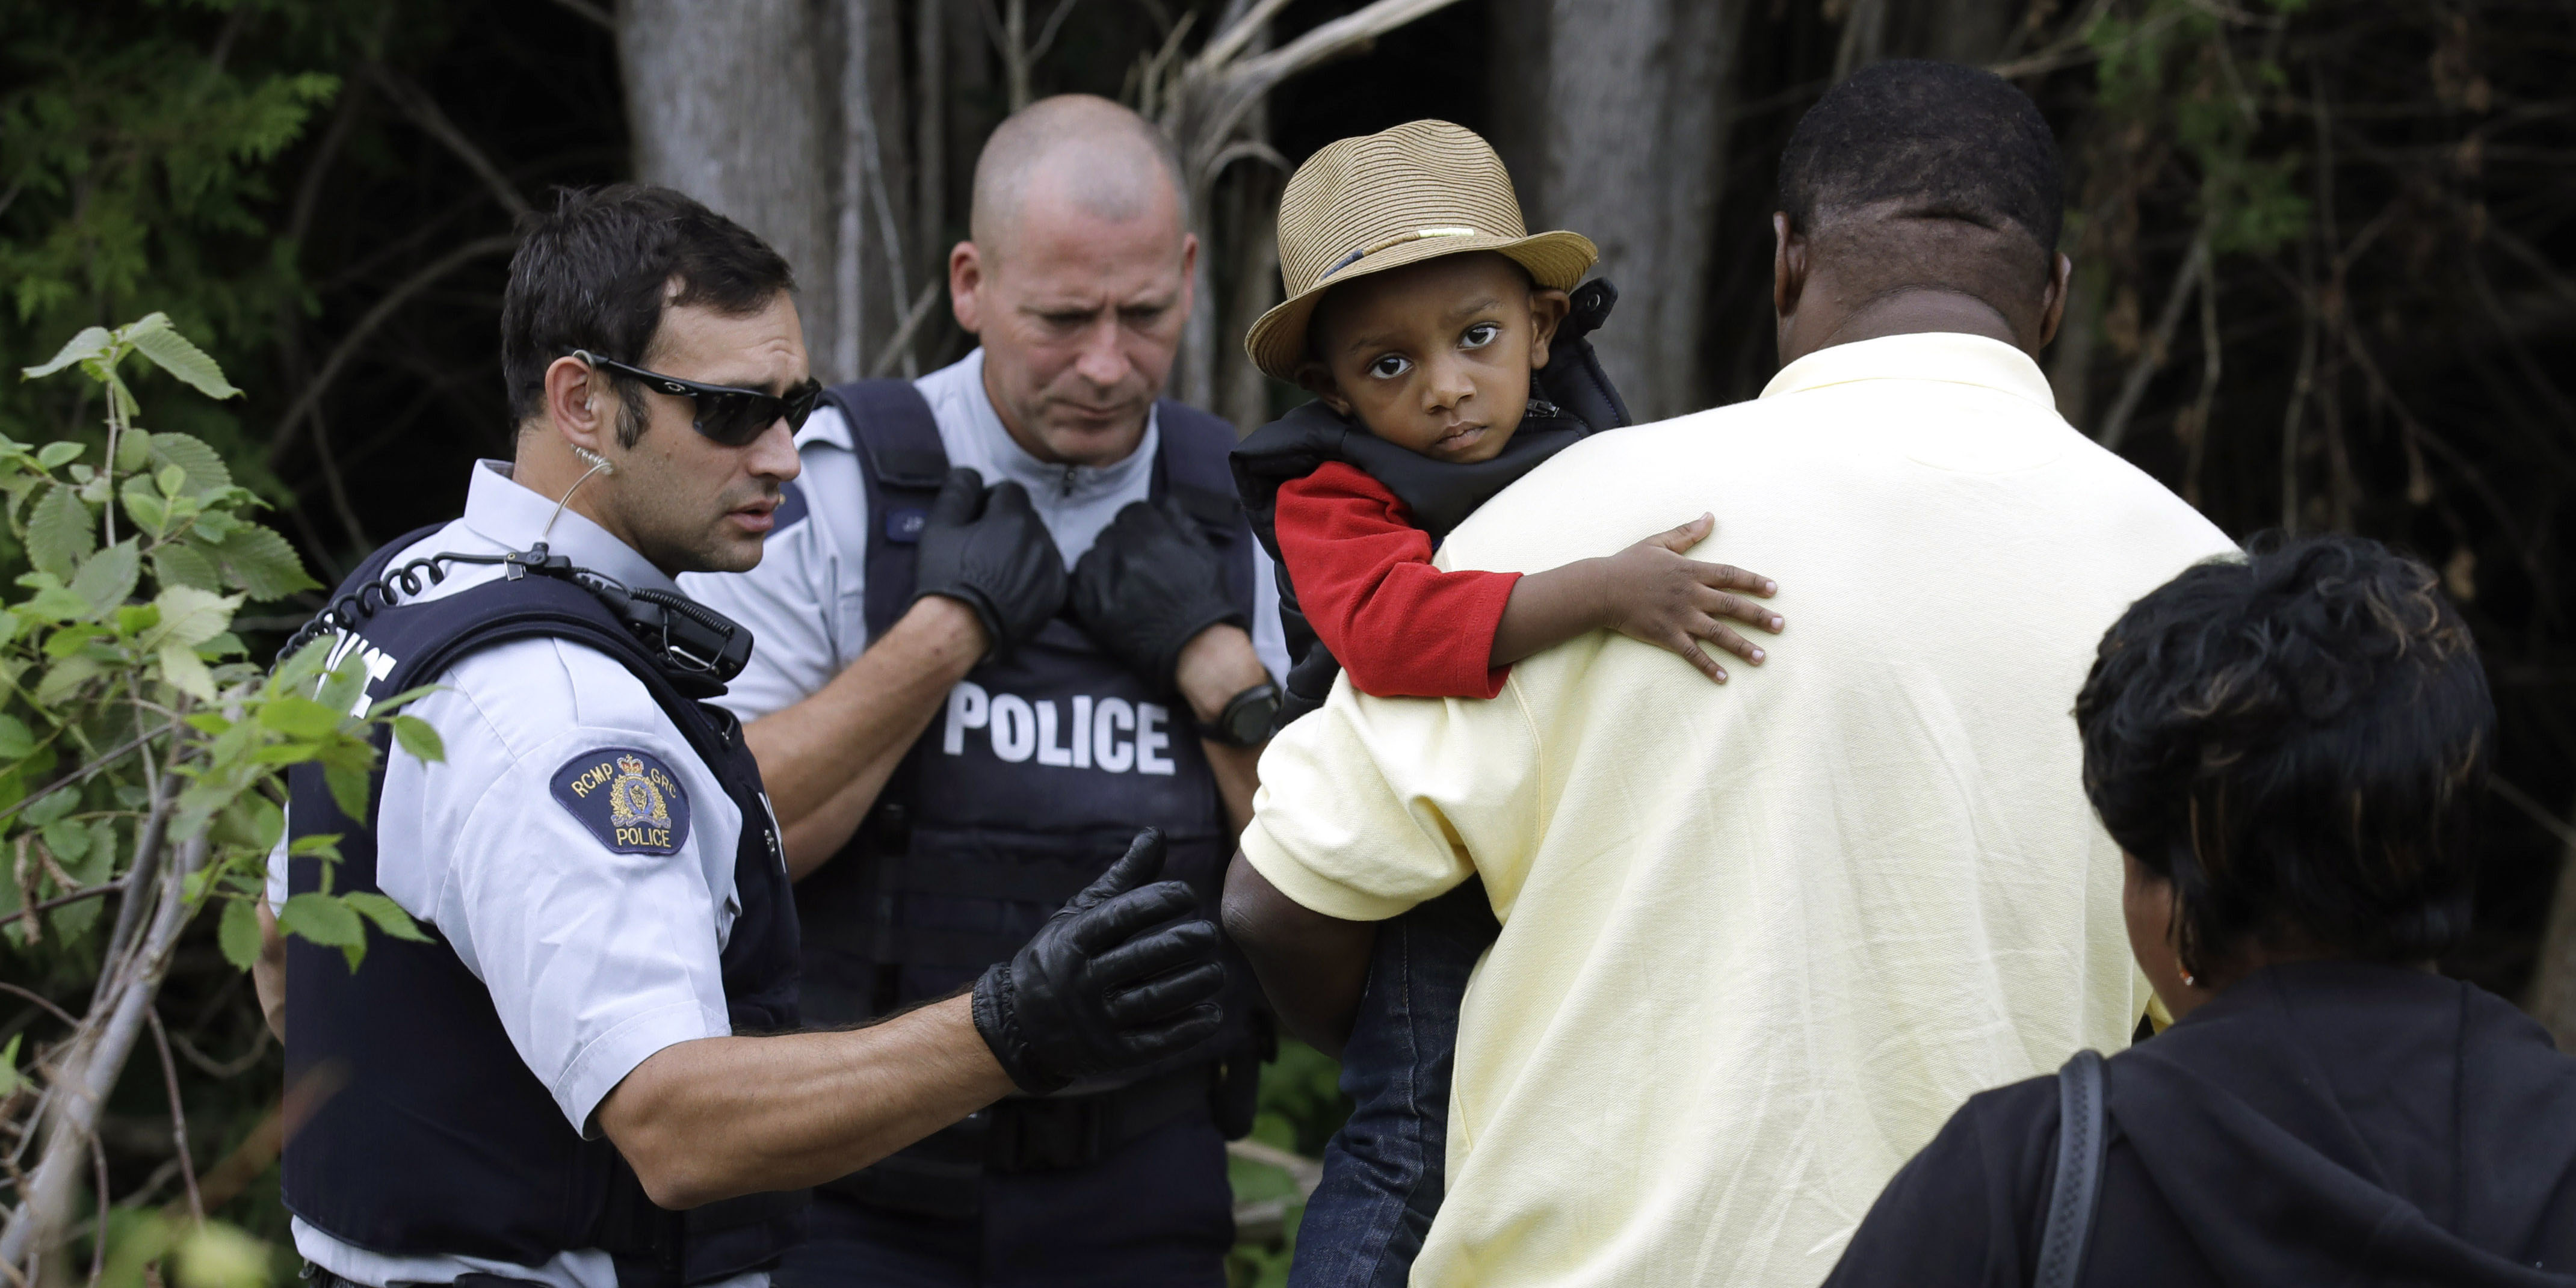 A Haitian boy holds onto his father as they approach an illegally crossing point, staffed by Royal Canadian Mounted Police officers, from Champlain, N.Y., to Saint-Bernard-de-Lacolle, Quebec, Monday, Aug. 7, 2017. Seven days a week, 24-hours a day people from across the globe are arriving at the end of a New York backroad so they can walk across a ditch into Canada knowing they will be instantly arrested, but with the hope the Canadian government will be kinder to them than the United States. (AP Photo/Charles Krupa)